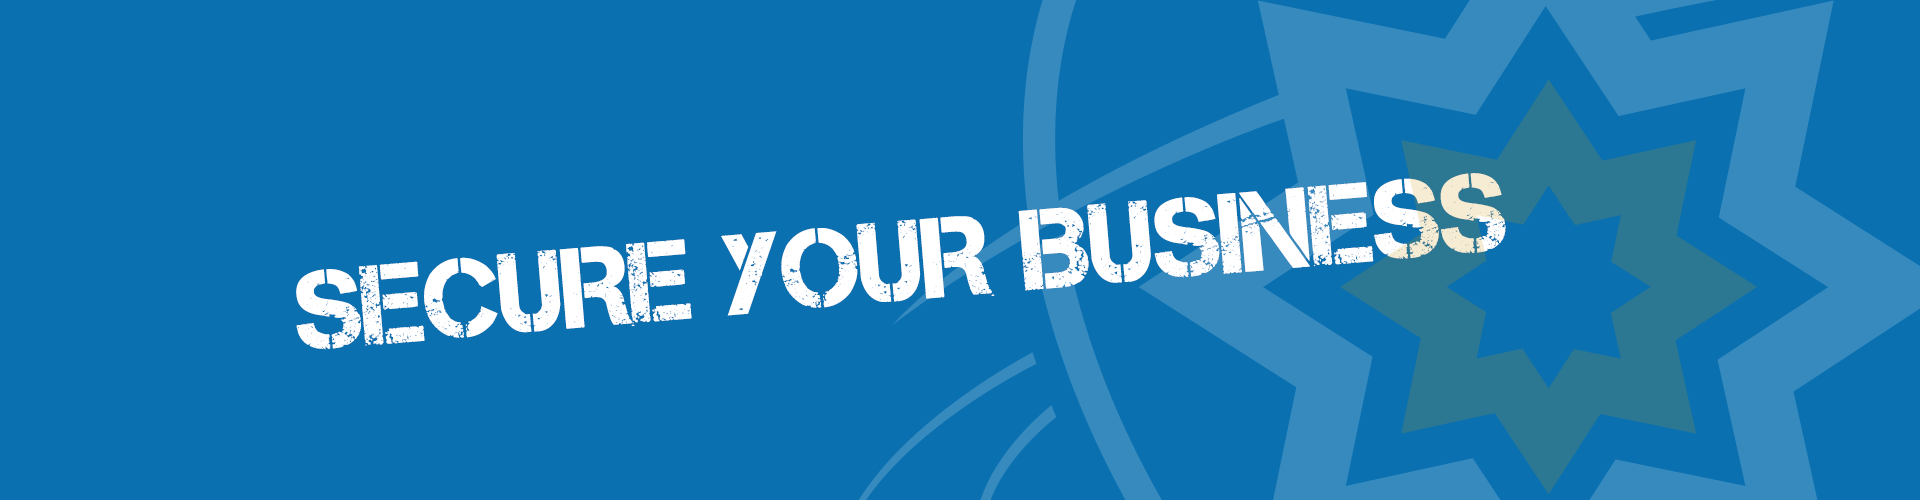 secure-your-business